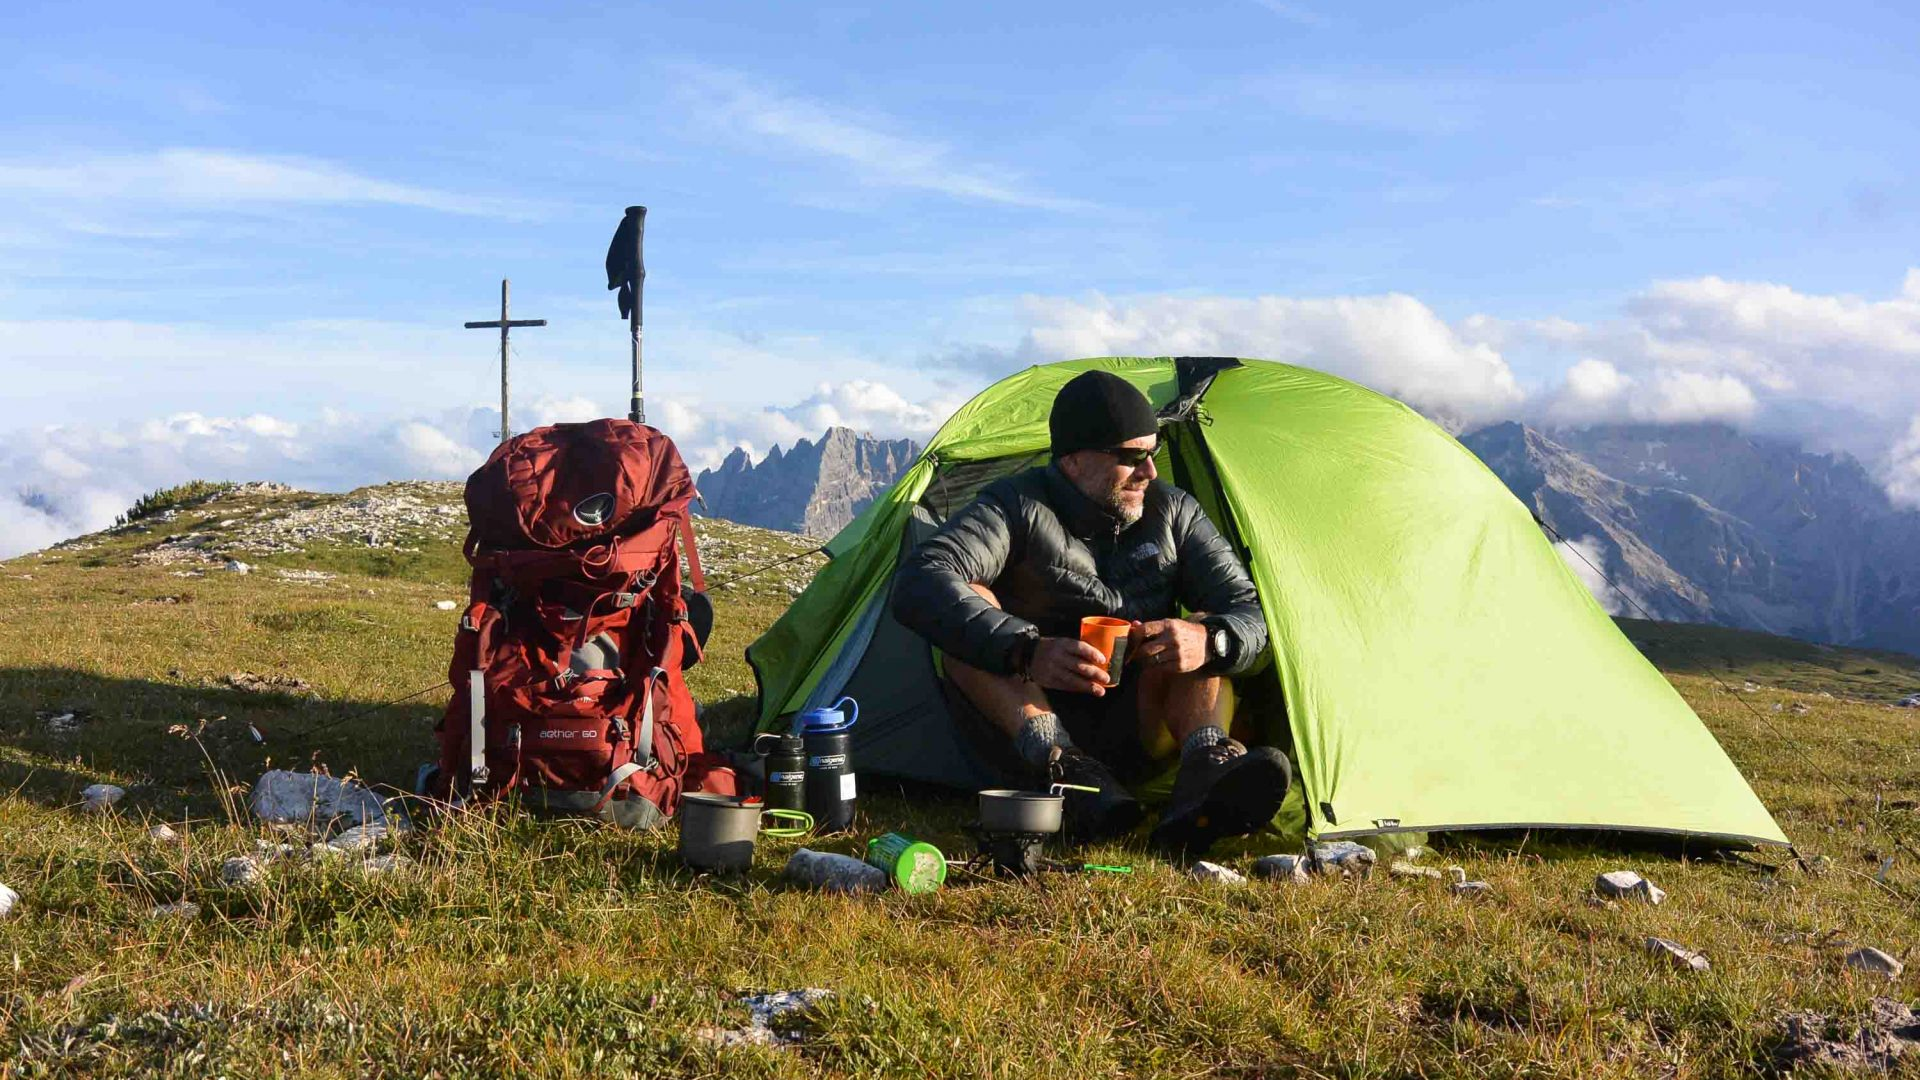 Huw Kingston at his mountain camp in the Dolomites, Italy.